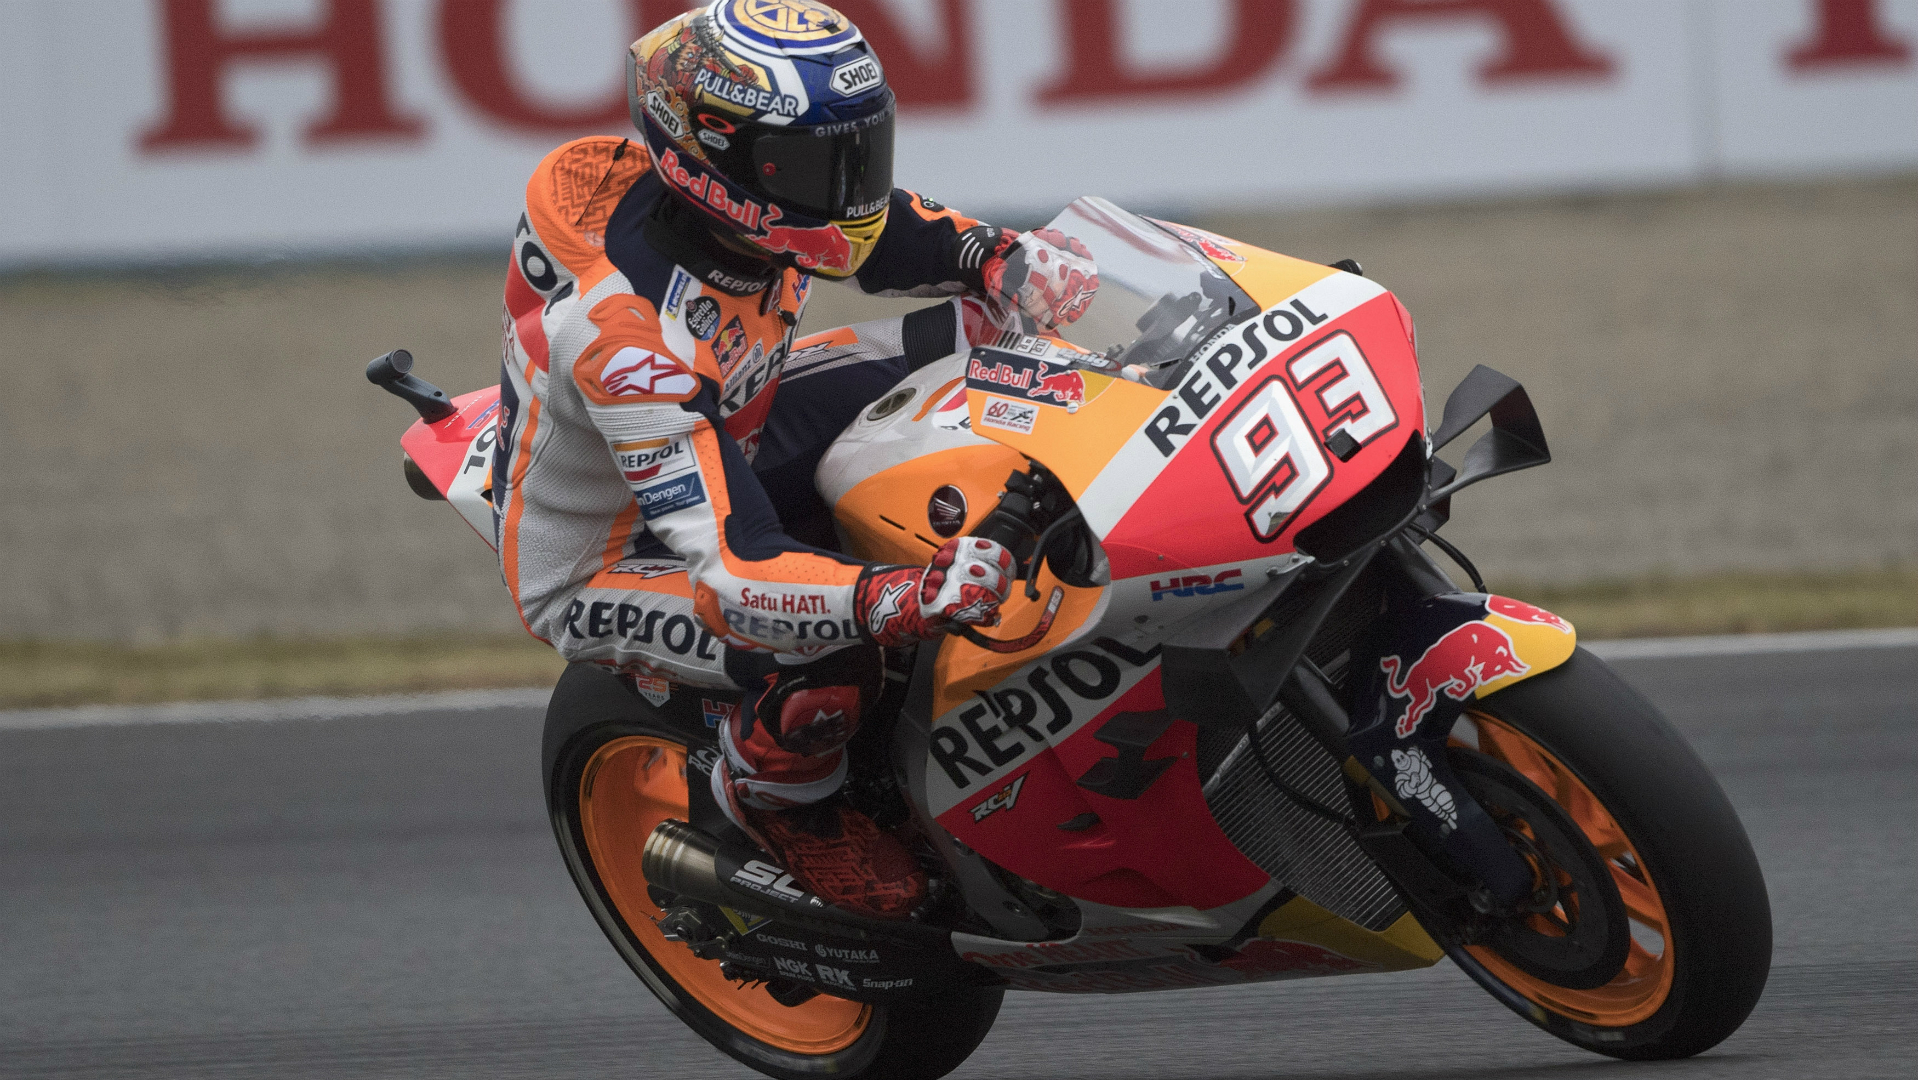 Marquez equals Doohan milestone with routine win at Motegi